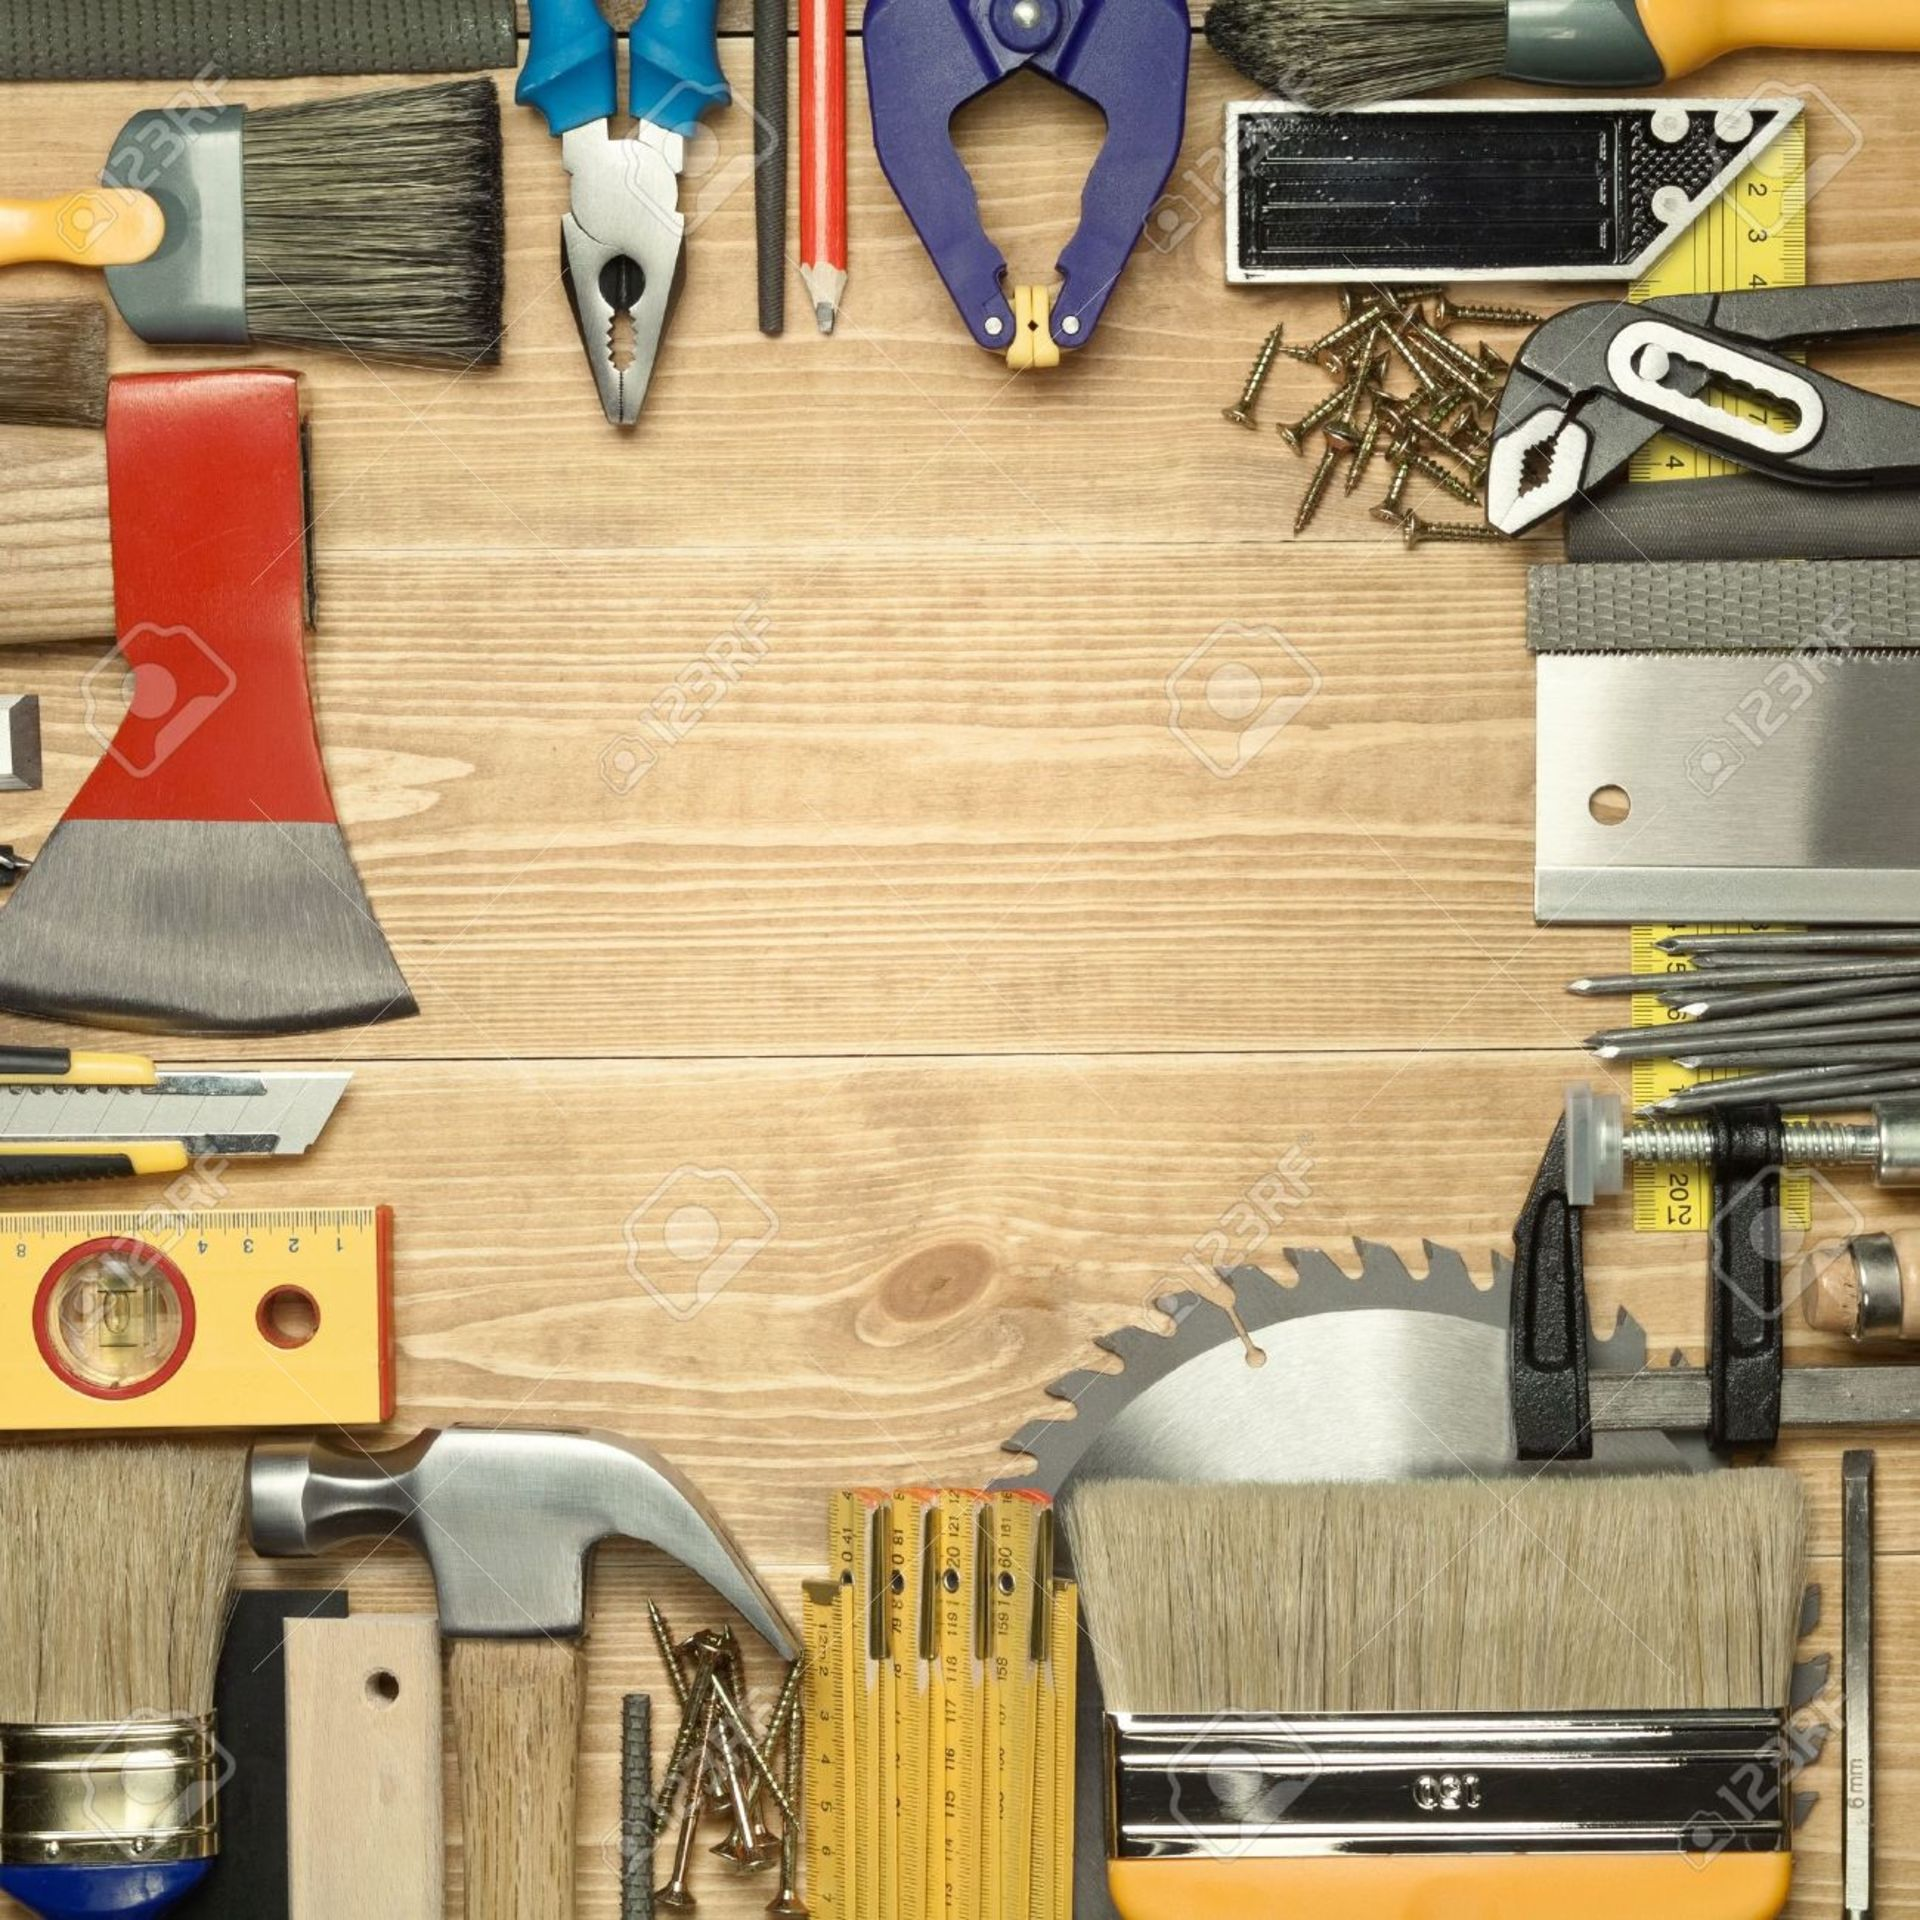 Home Remodeling Projects That Pay Off